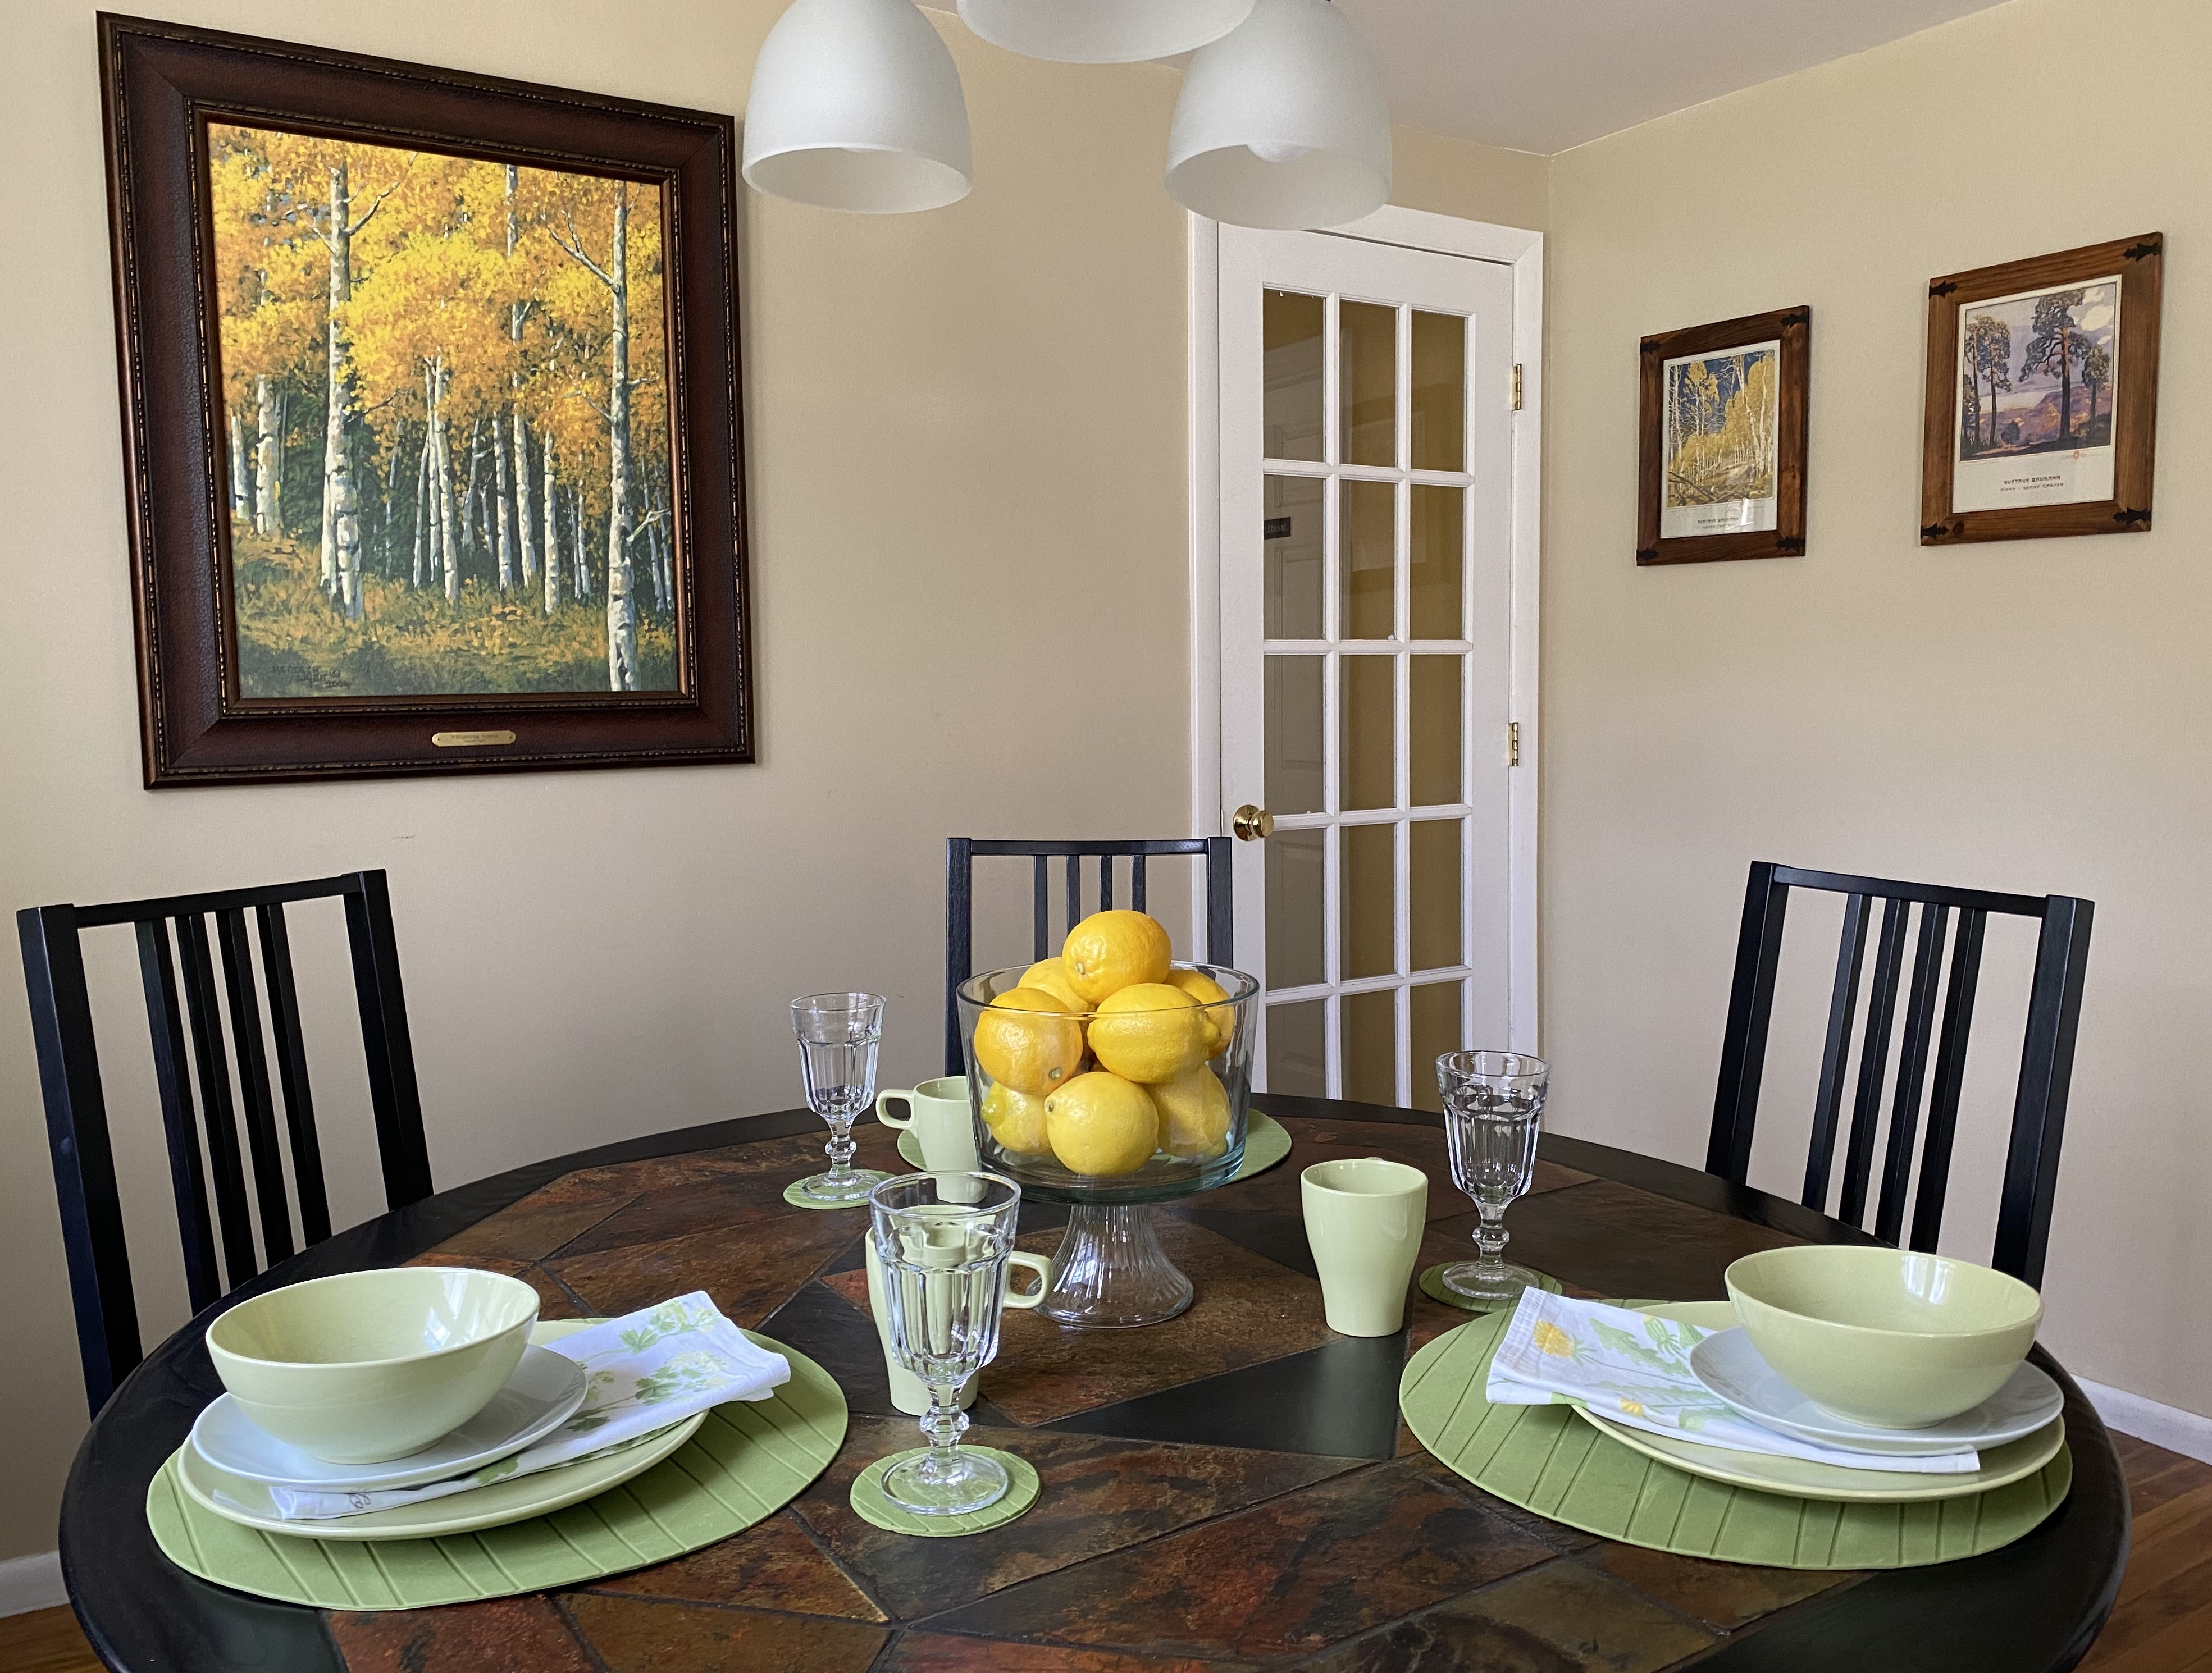 Birches Dining Room Table